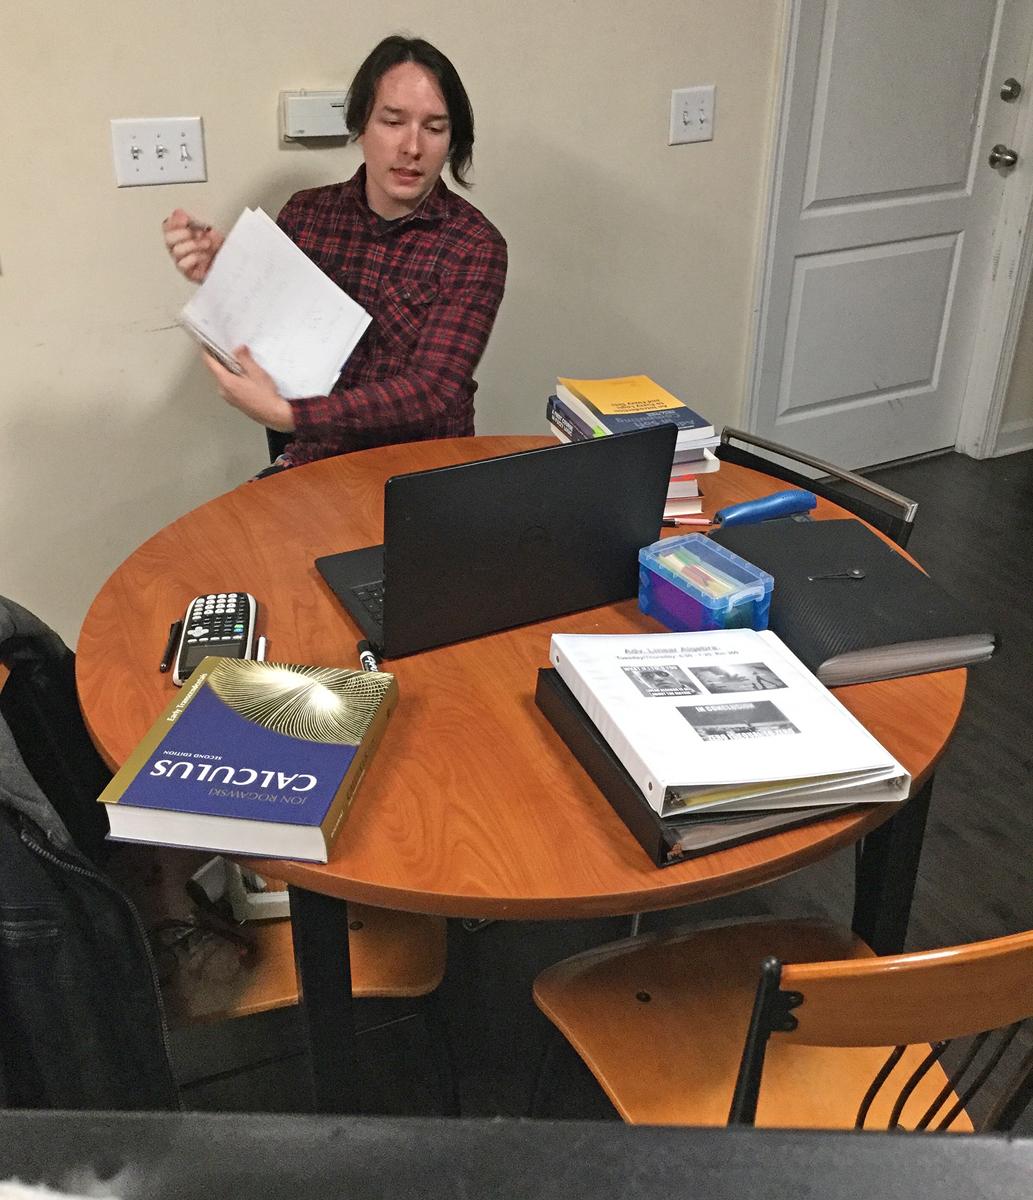 College of Basic and Applied Sciences graduate student Zach Thomas helps tutor an undergraduate student in Calculus I during a remote session Thursday, April 2, from his home. He is one of 170 tutors and 30 supplemental instructors offering assistance in 200 courses campuswide. (Submitted photo by Zach Thomas)